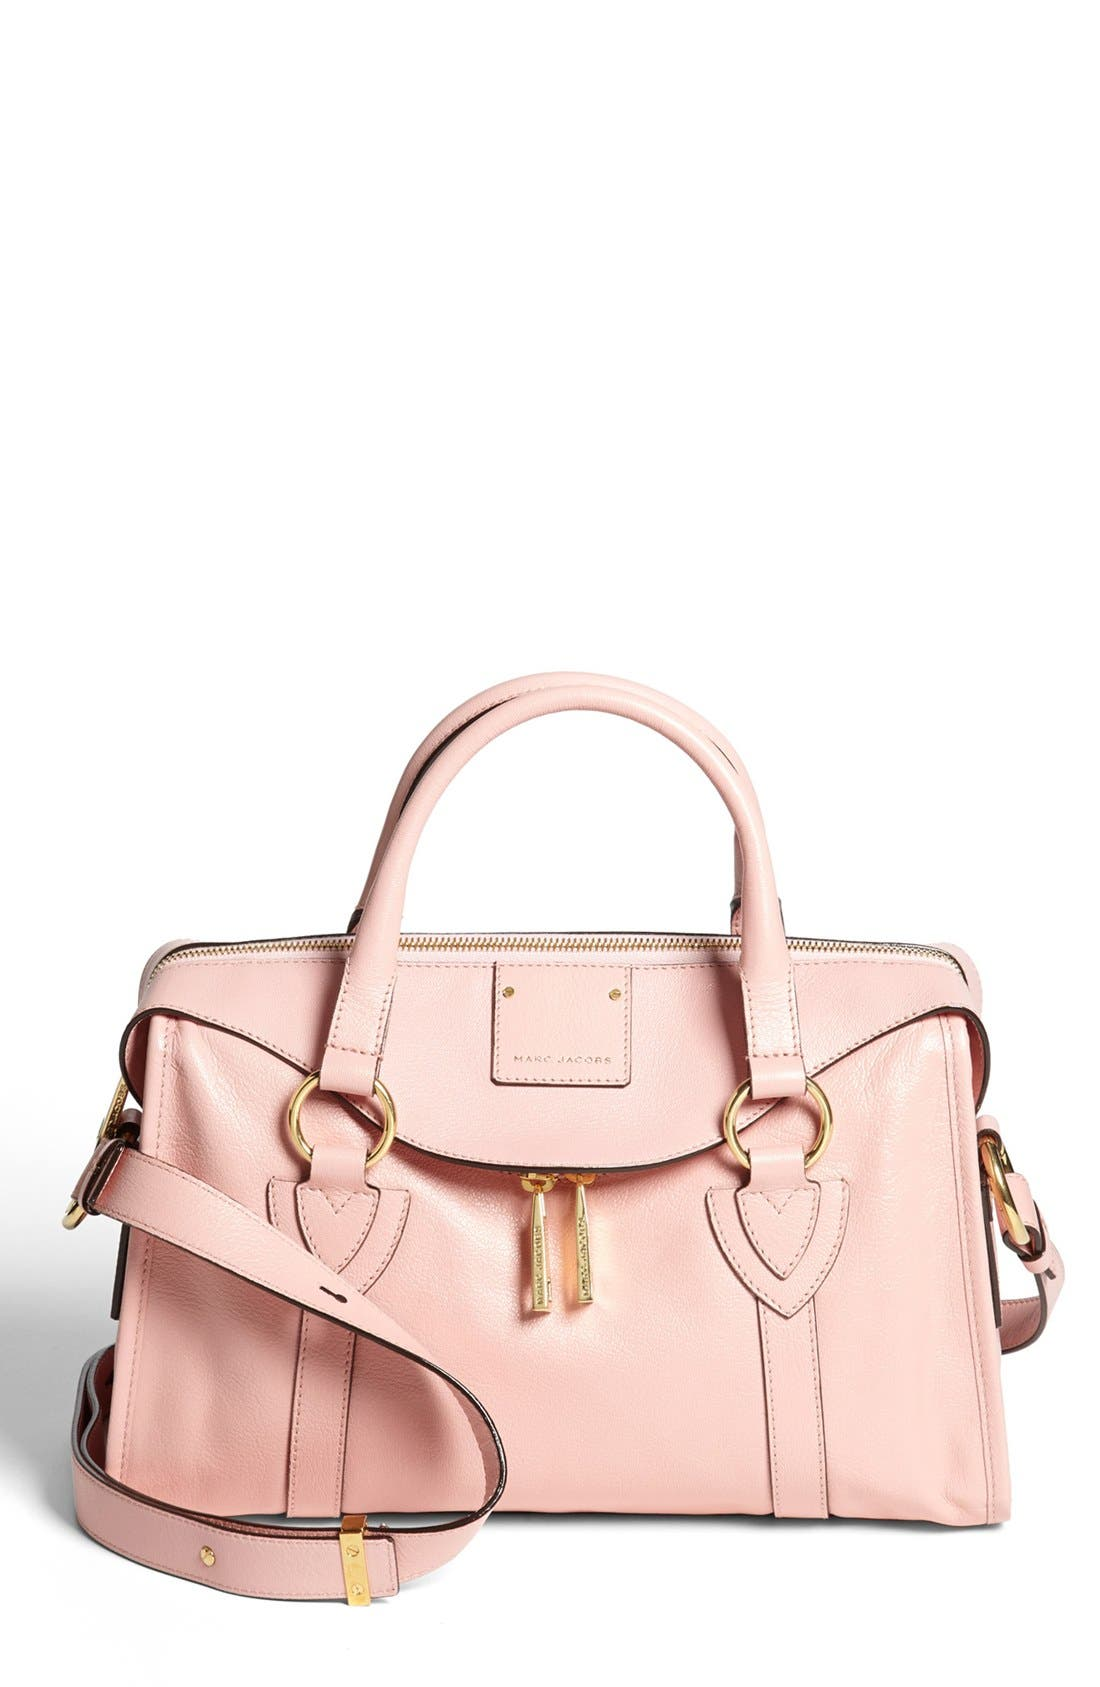 Main Image - MARC JACOBS 'Small Wellington Fulton' Leather Satchel